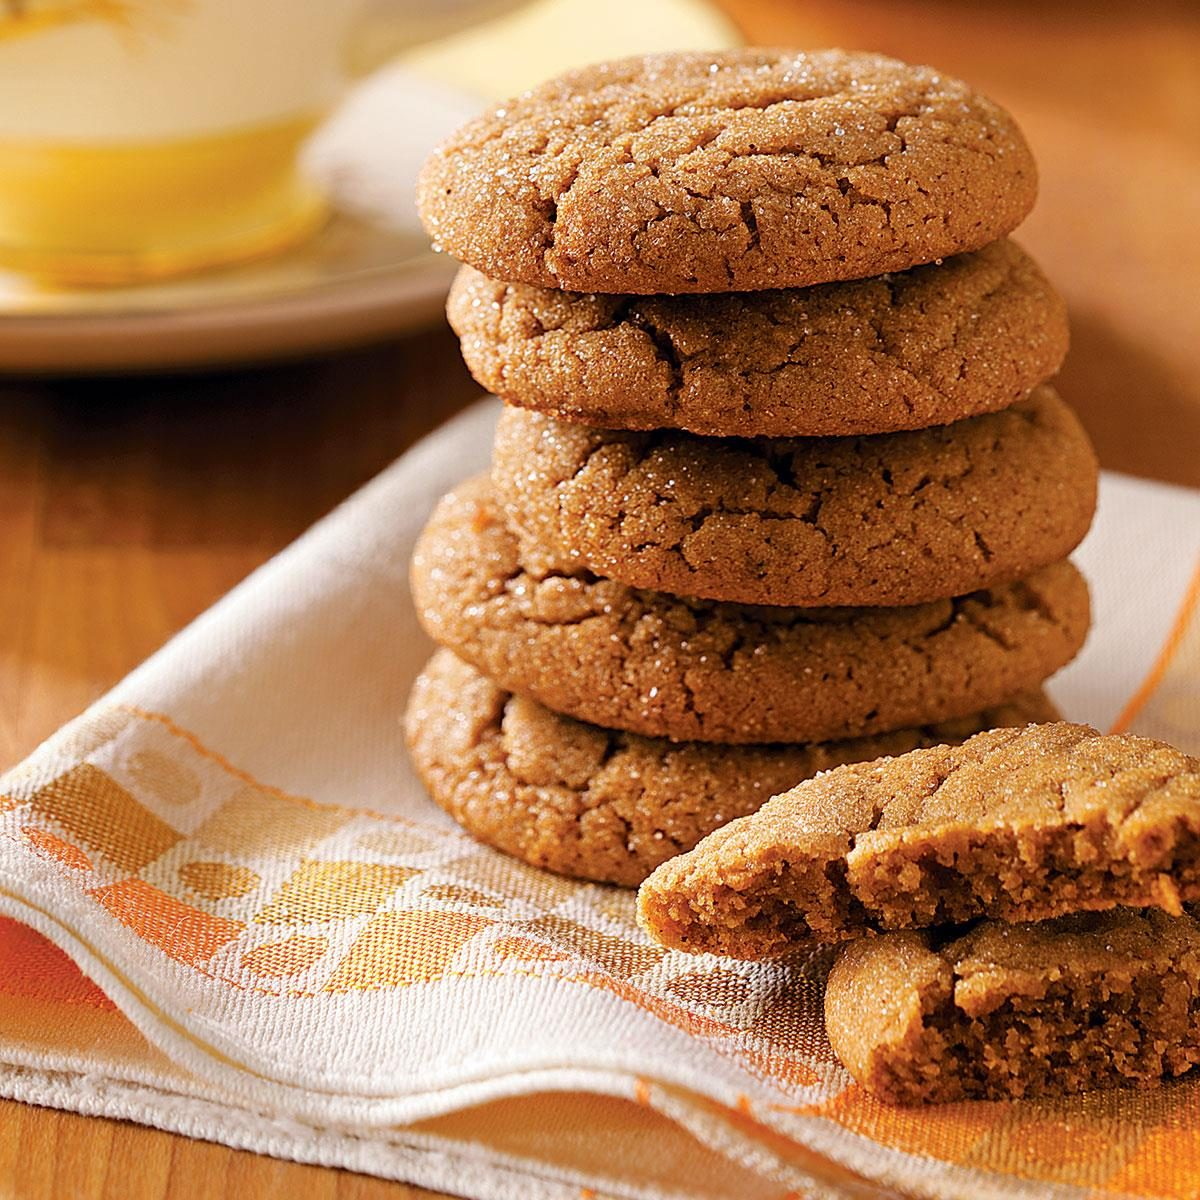 Ginger snaps pic 34